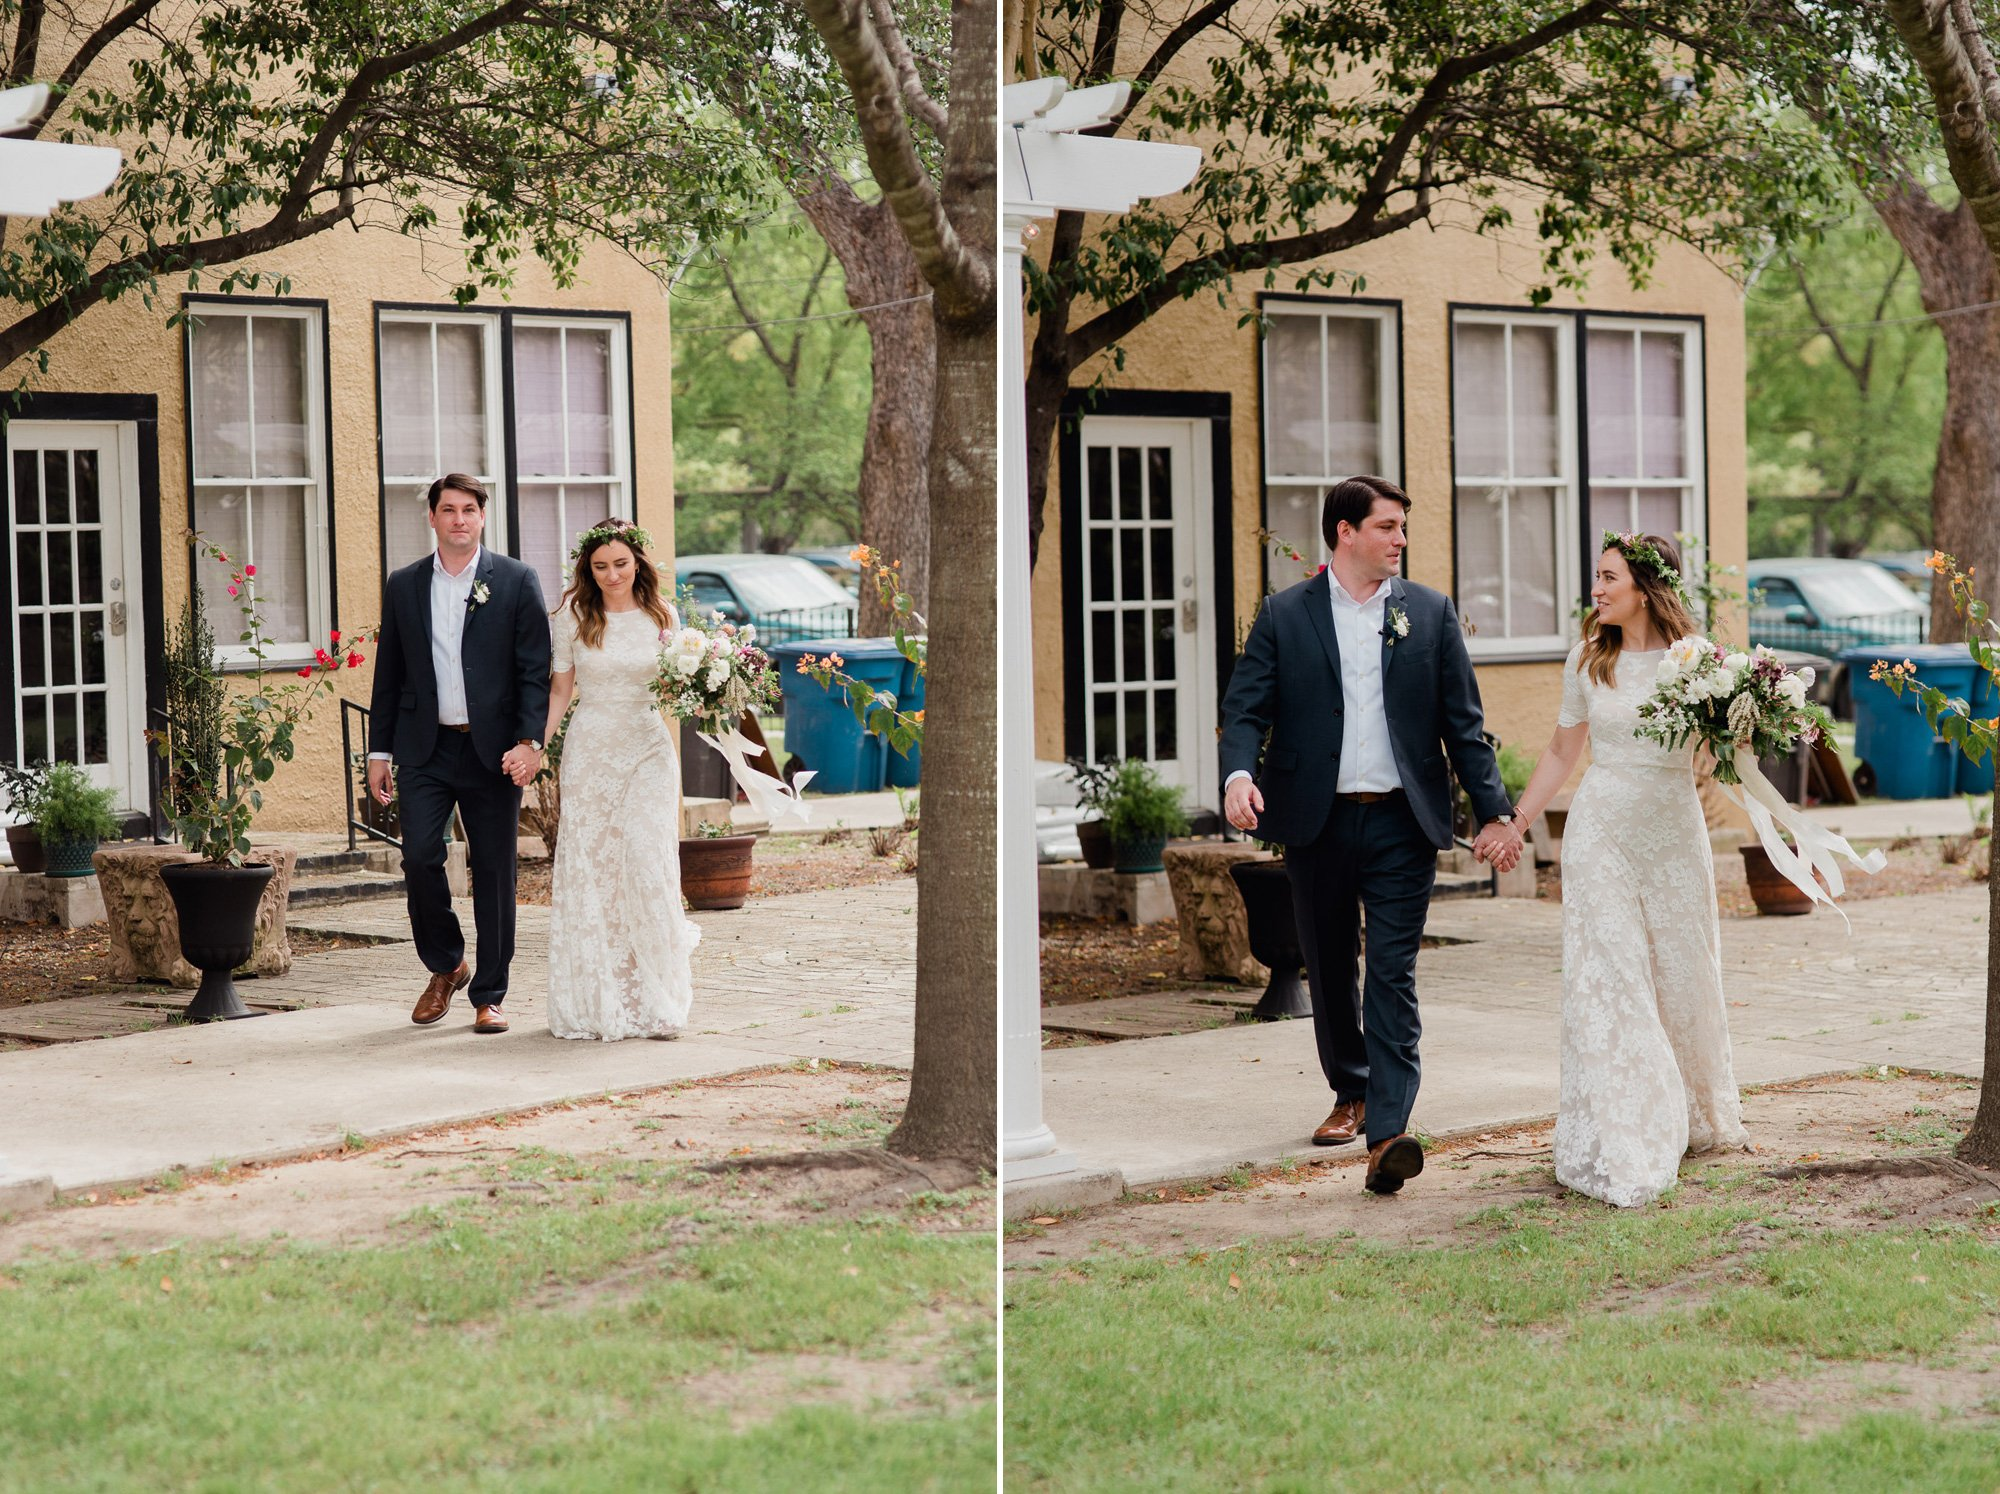 non-traditional wedding photographers in san antonio texas, non traditional wedding with bride and groom walking down the aisle together